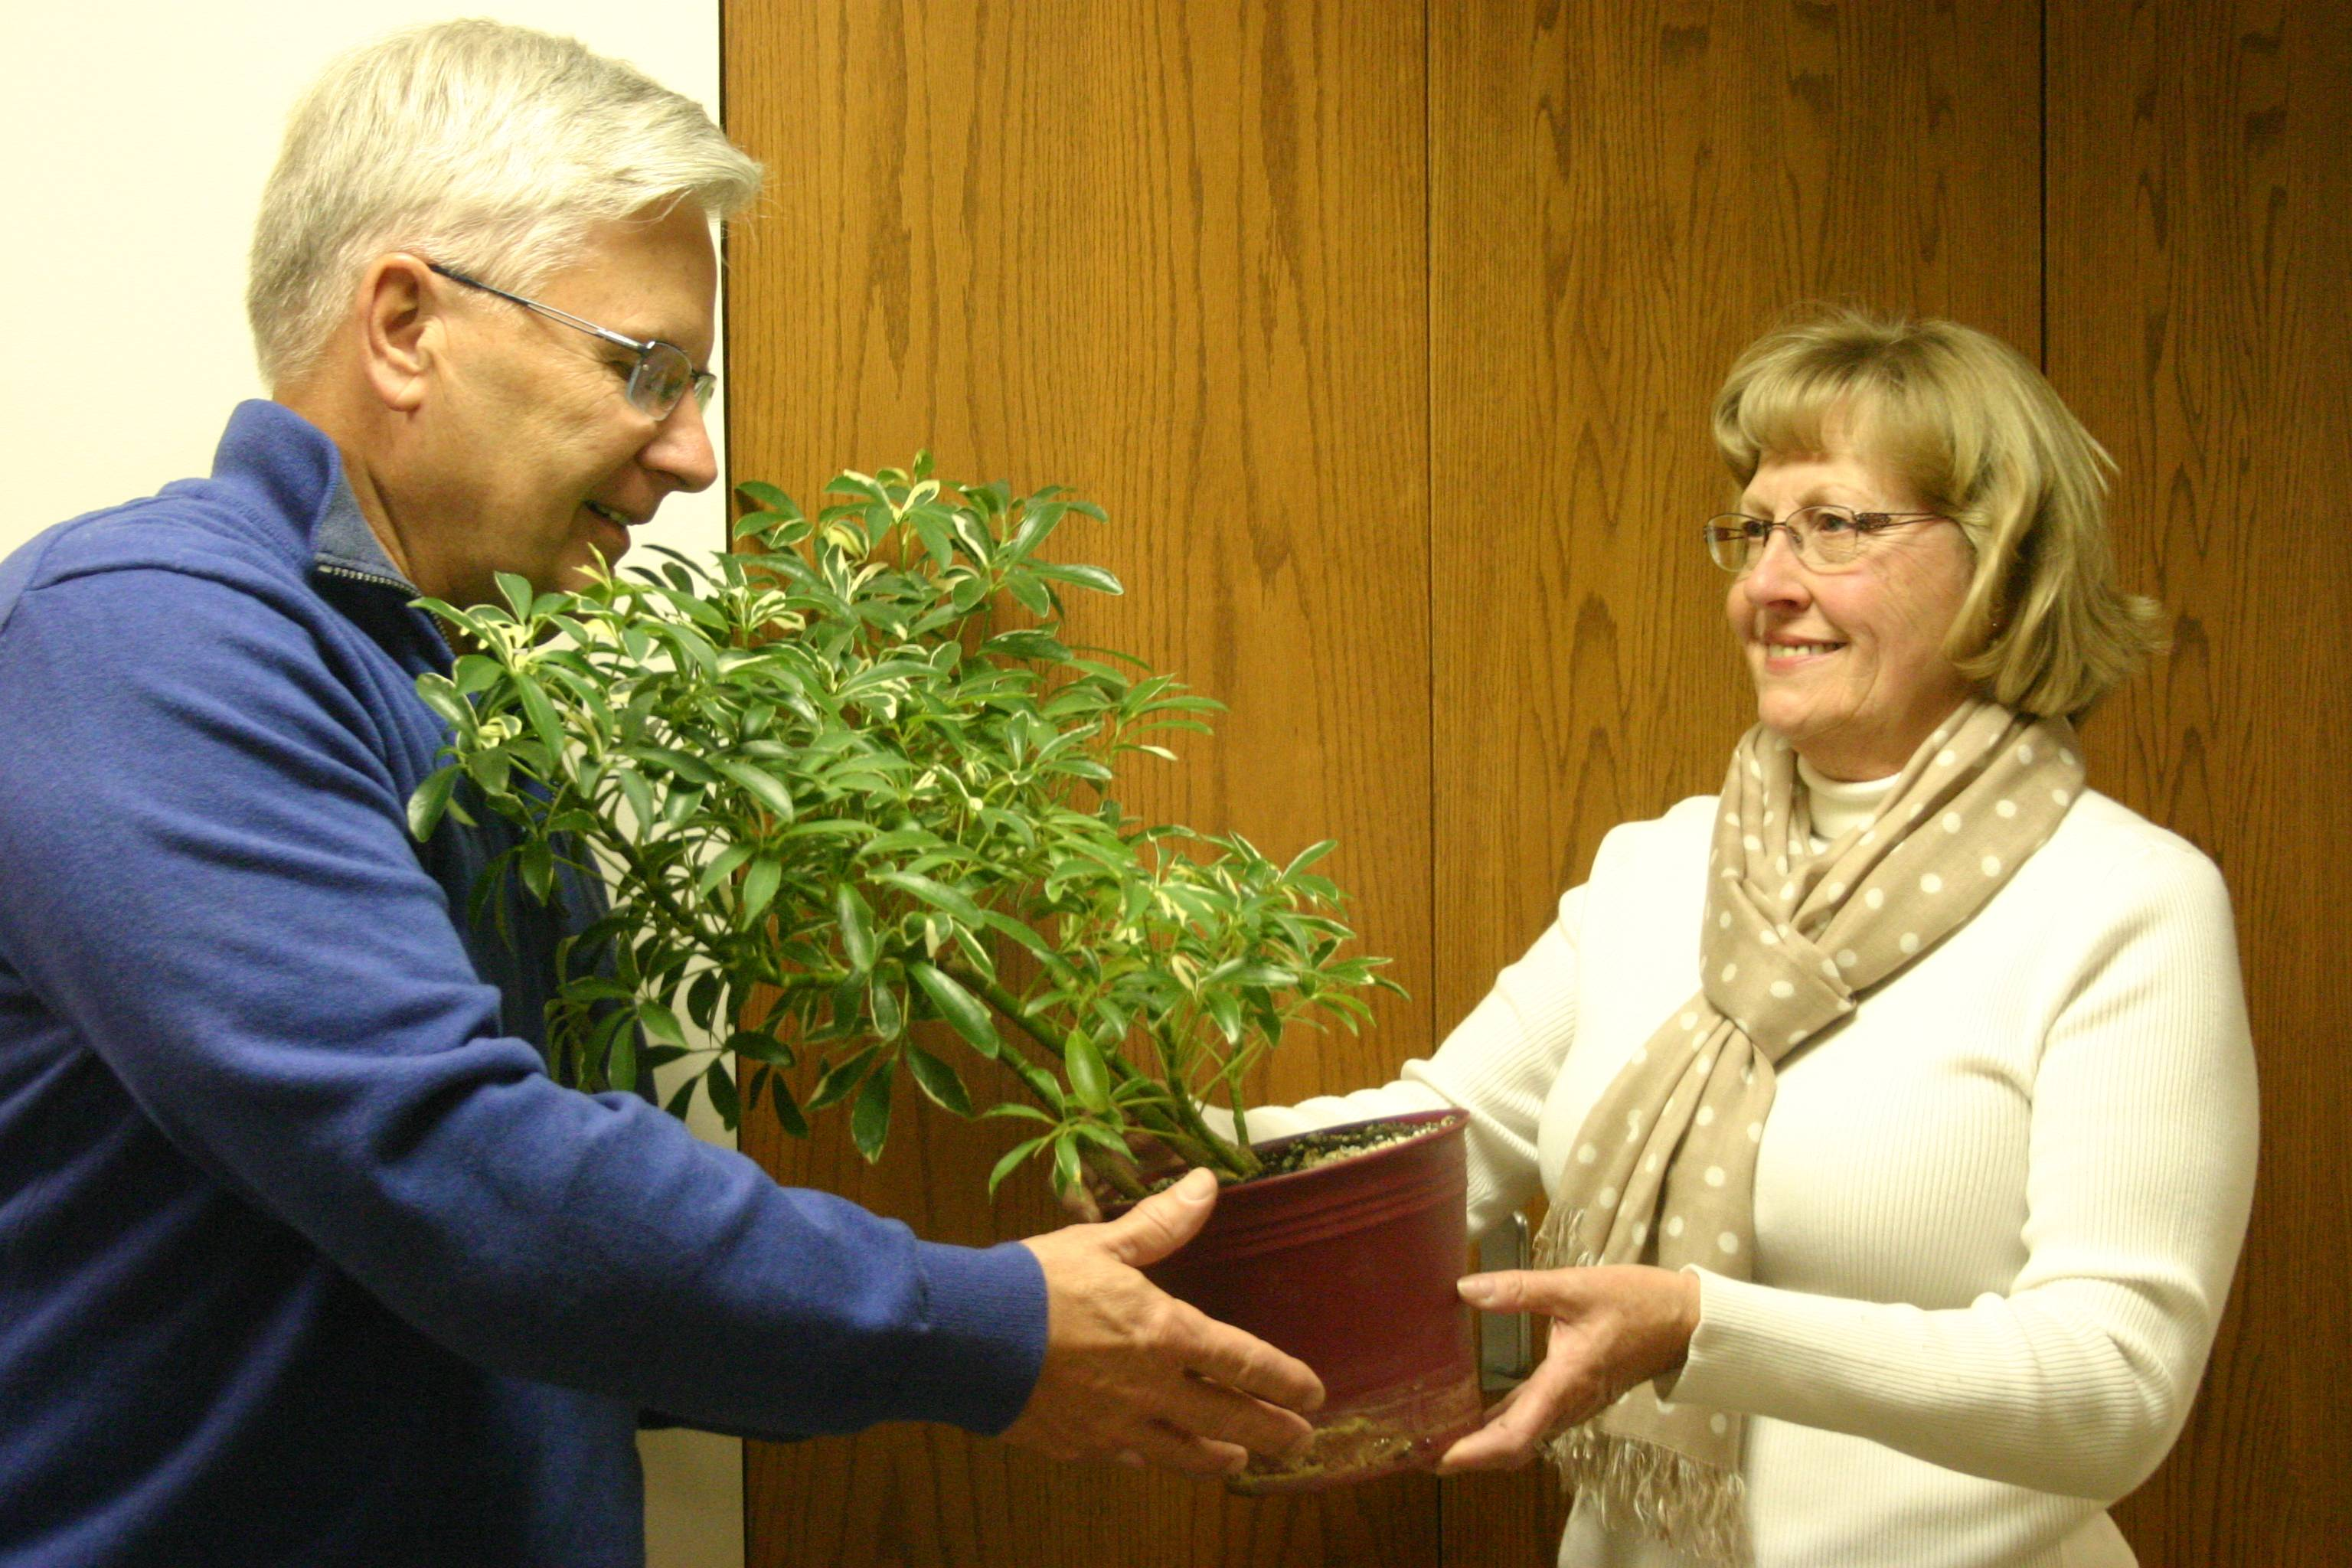 Ken and Pam Bruhn of Elgin gather plants to recreate the Garden of Gethsemane at South Elgin Community United Methodist Church.